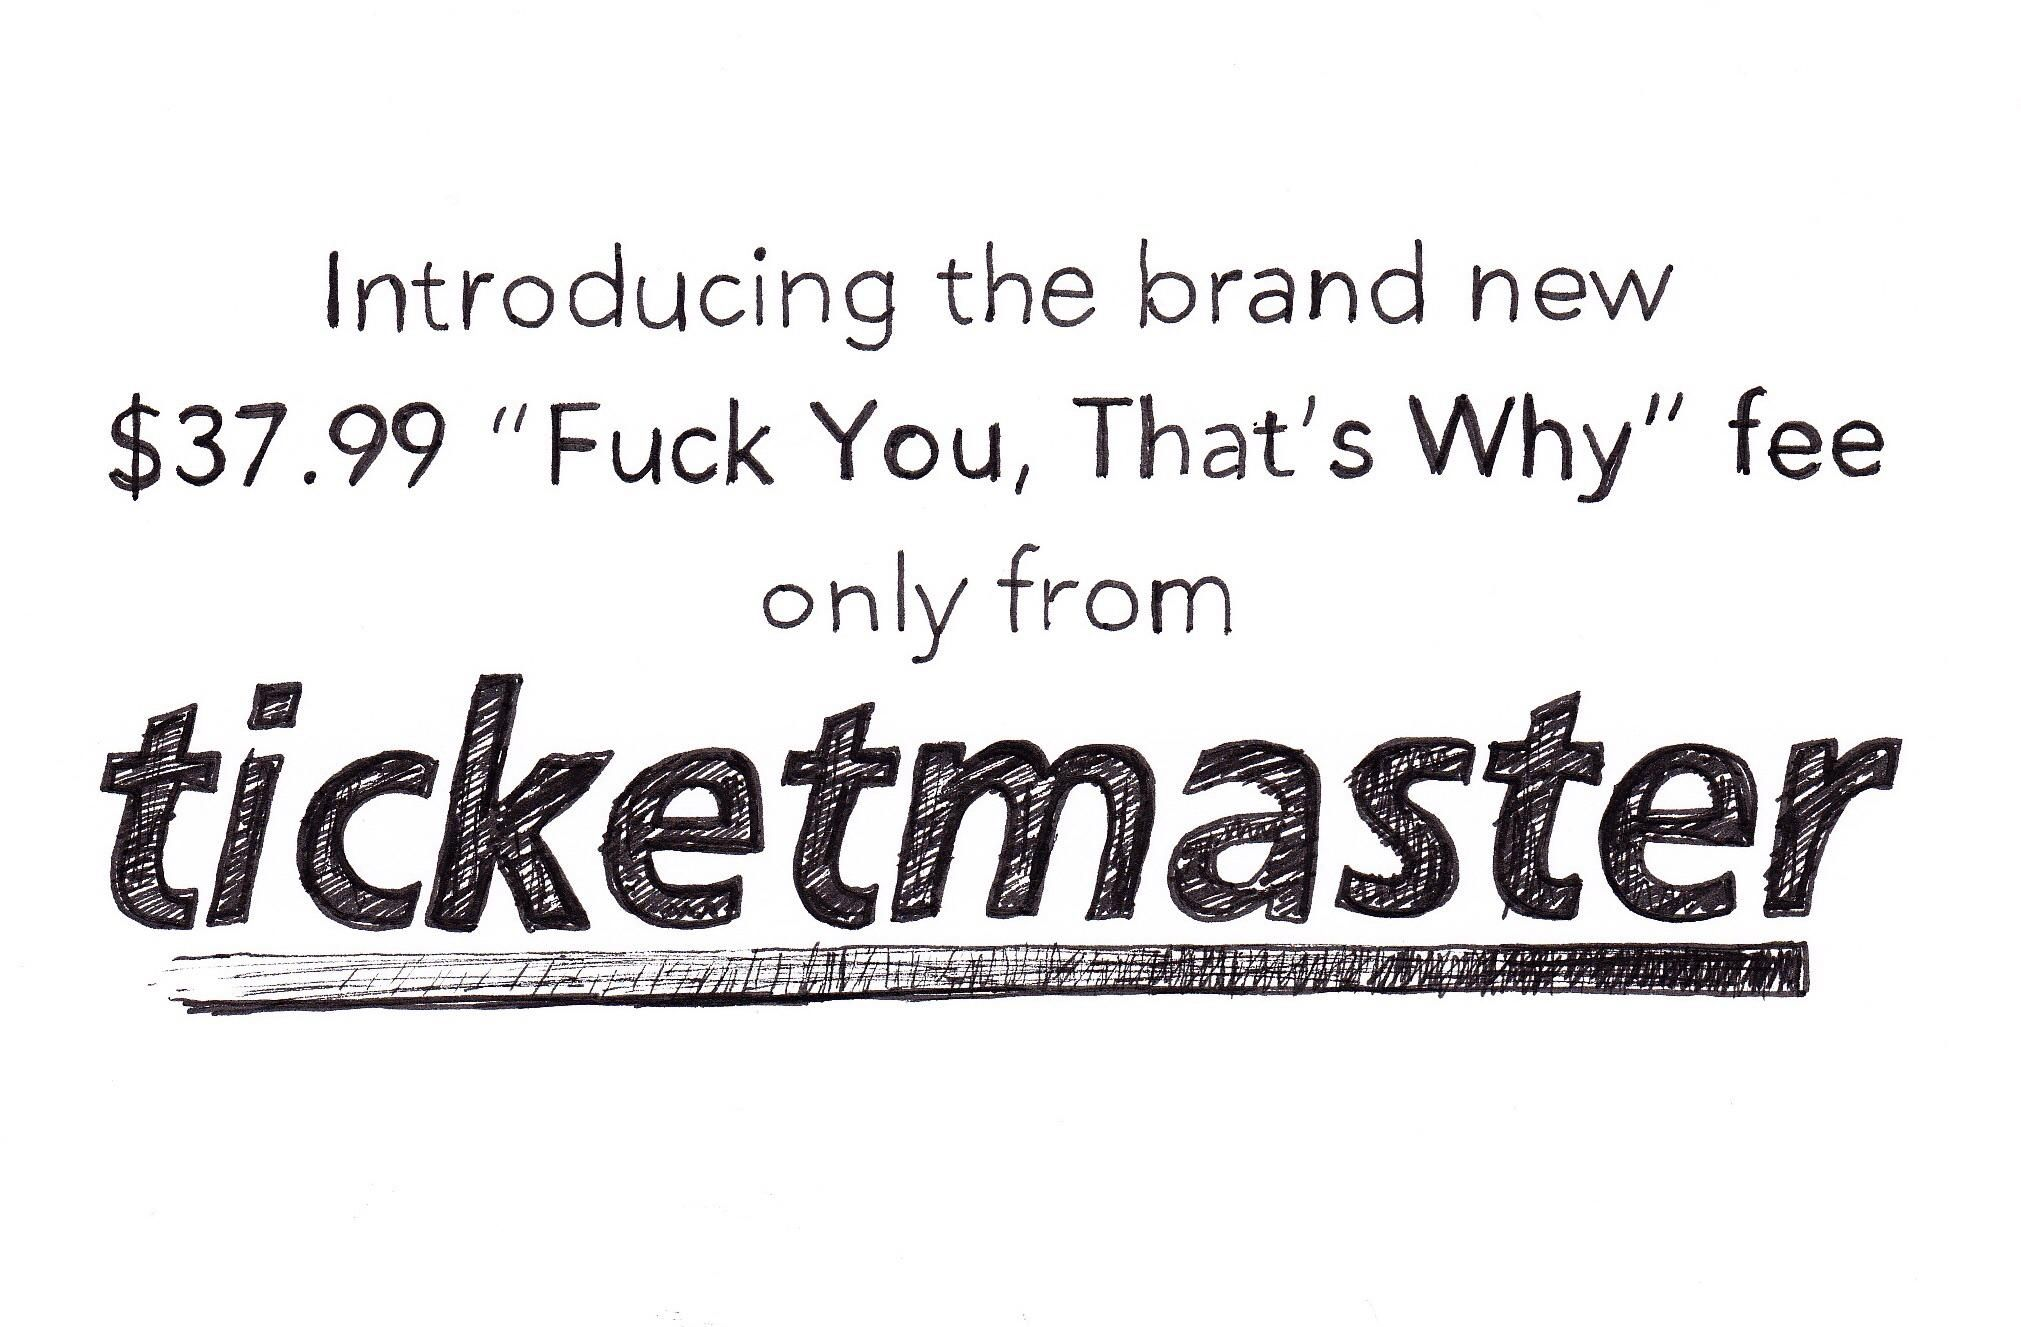 only from Ticketmaster